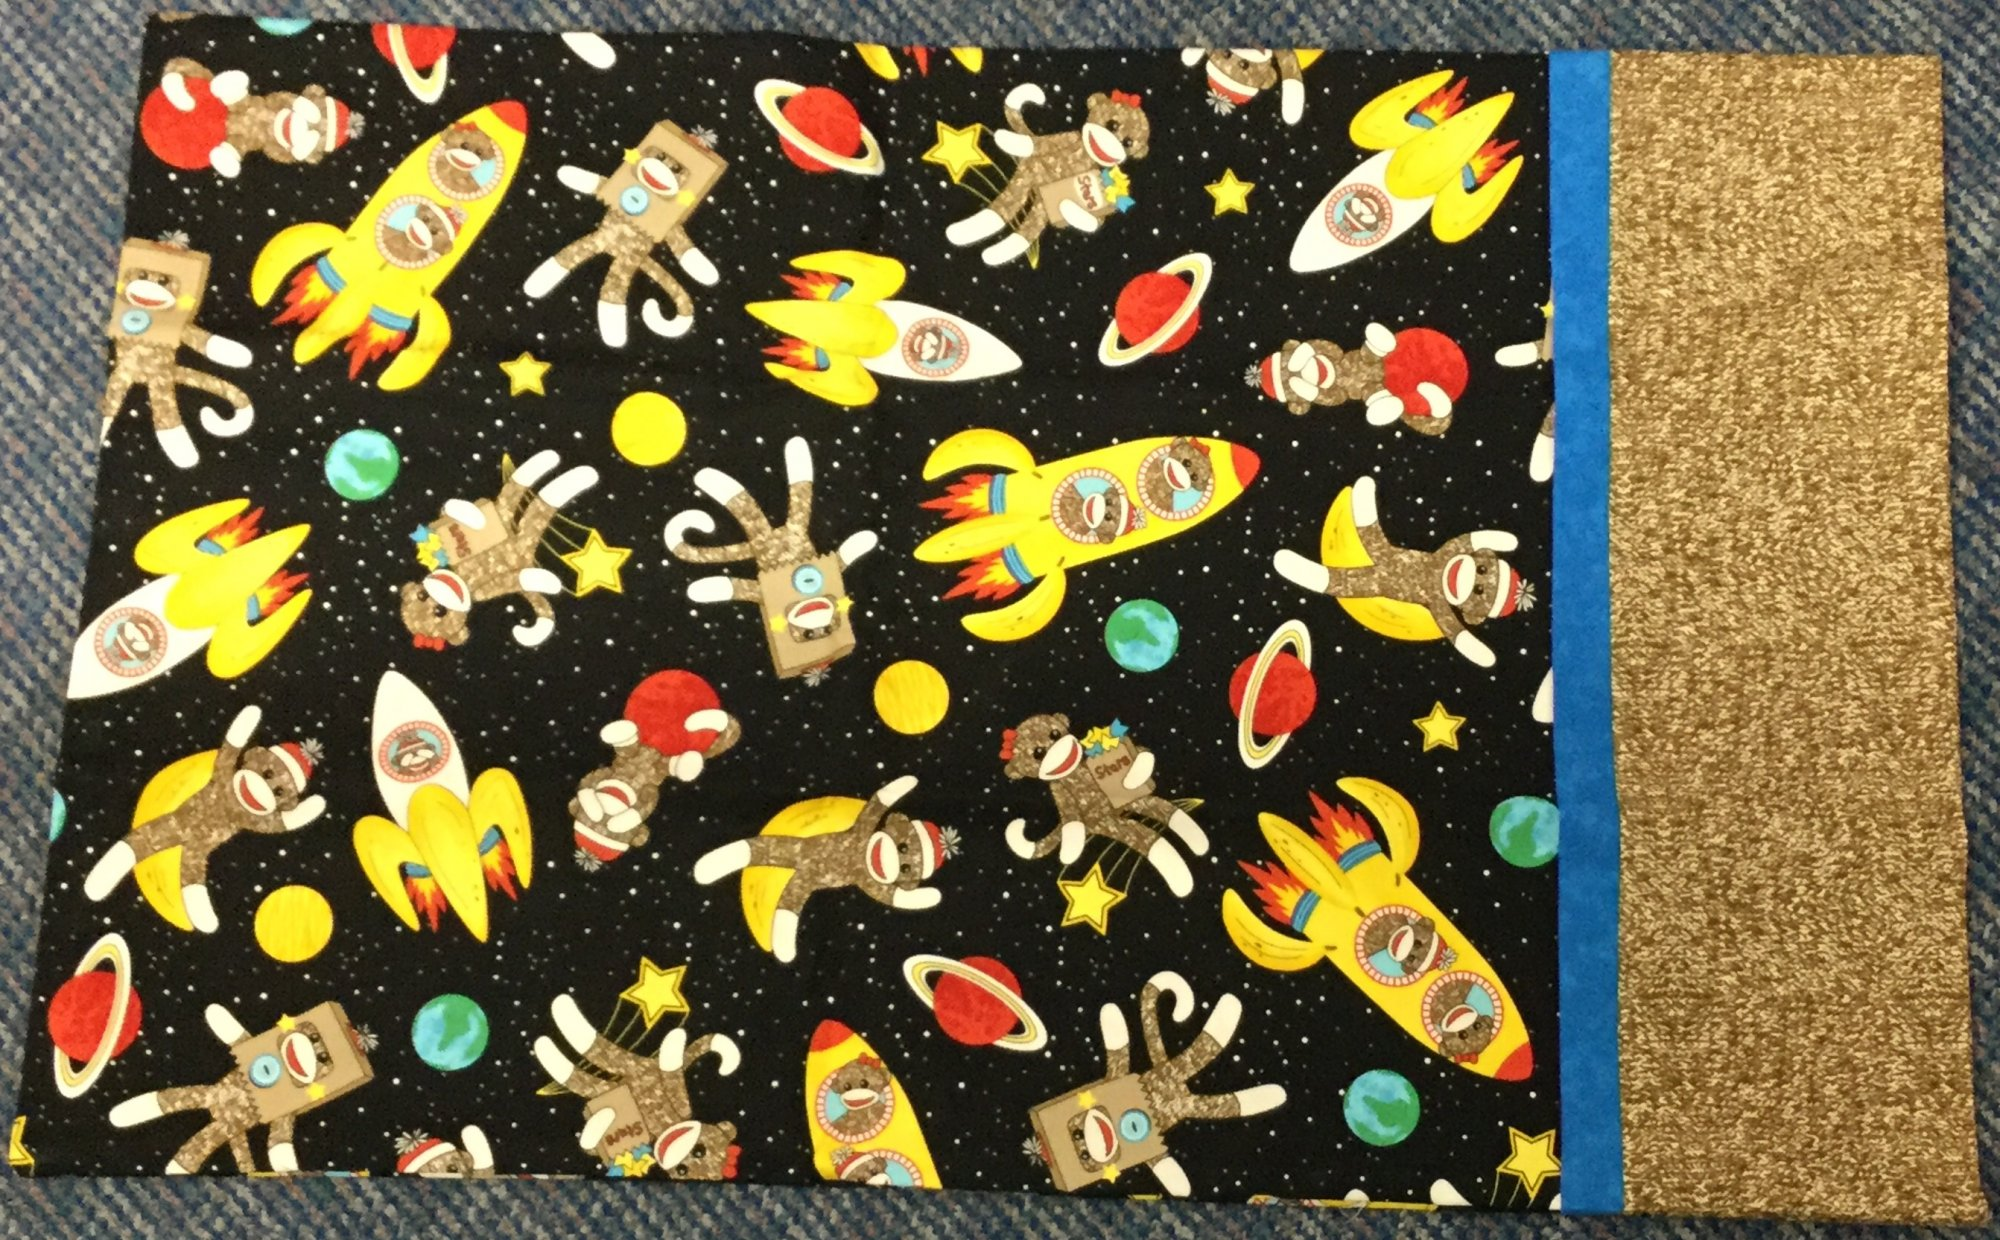 Pillowcase Kit-Sock Monkey in Space